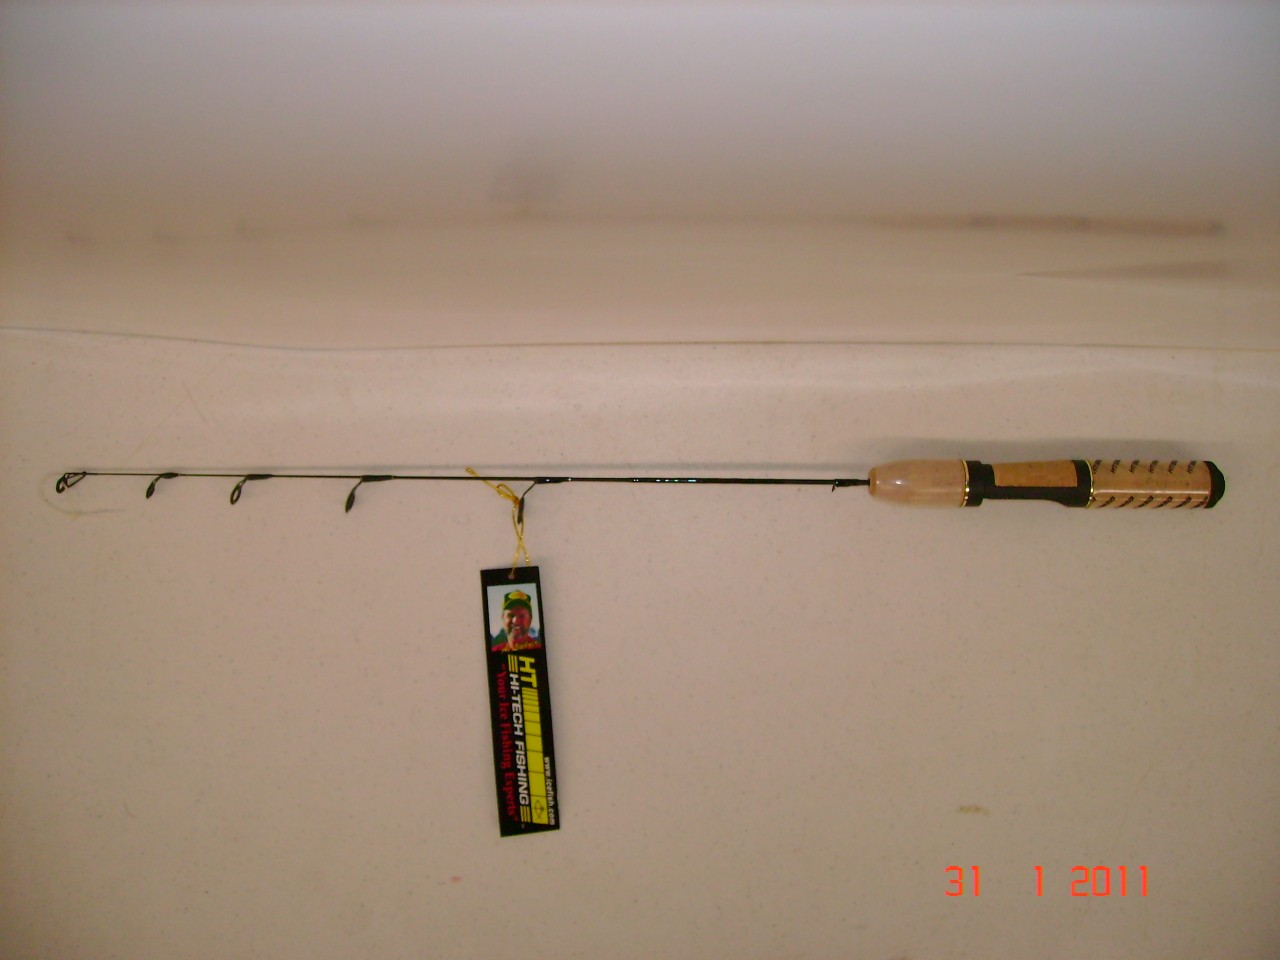 Ht 5 eye cork handle ice rod ice fishing rods reels for Ht ice fishing